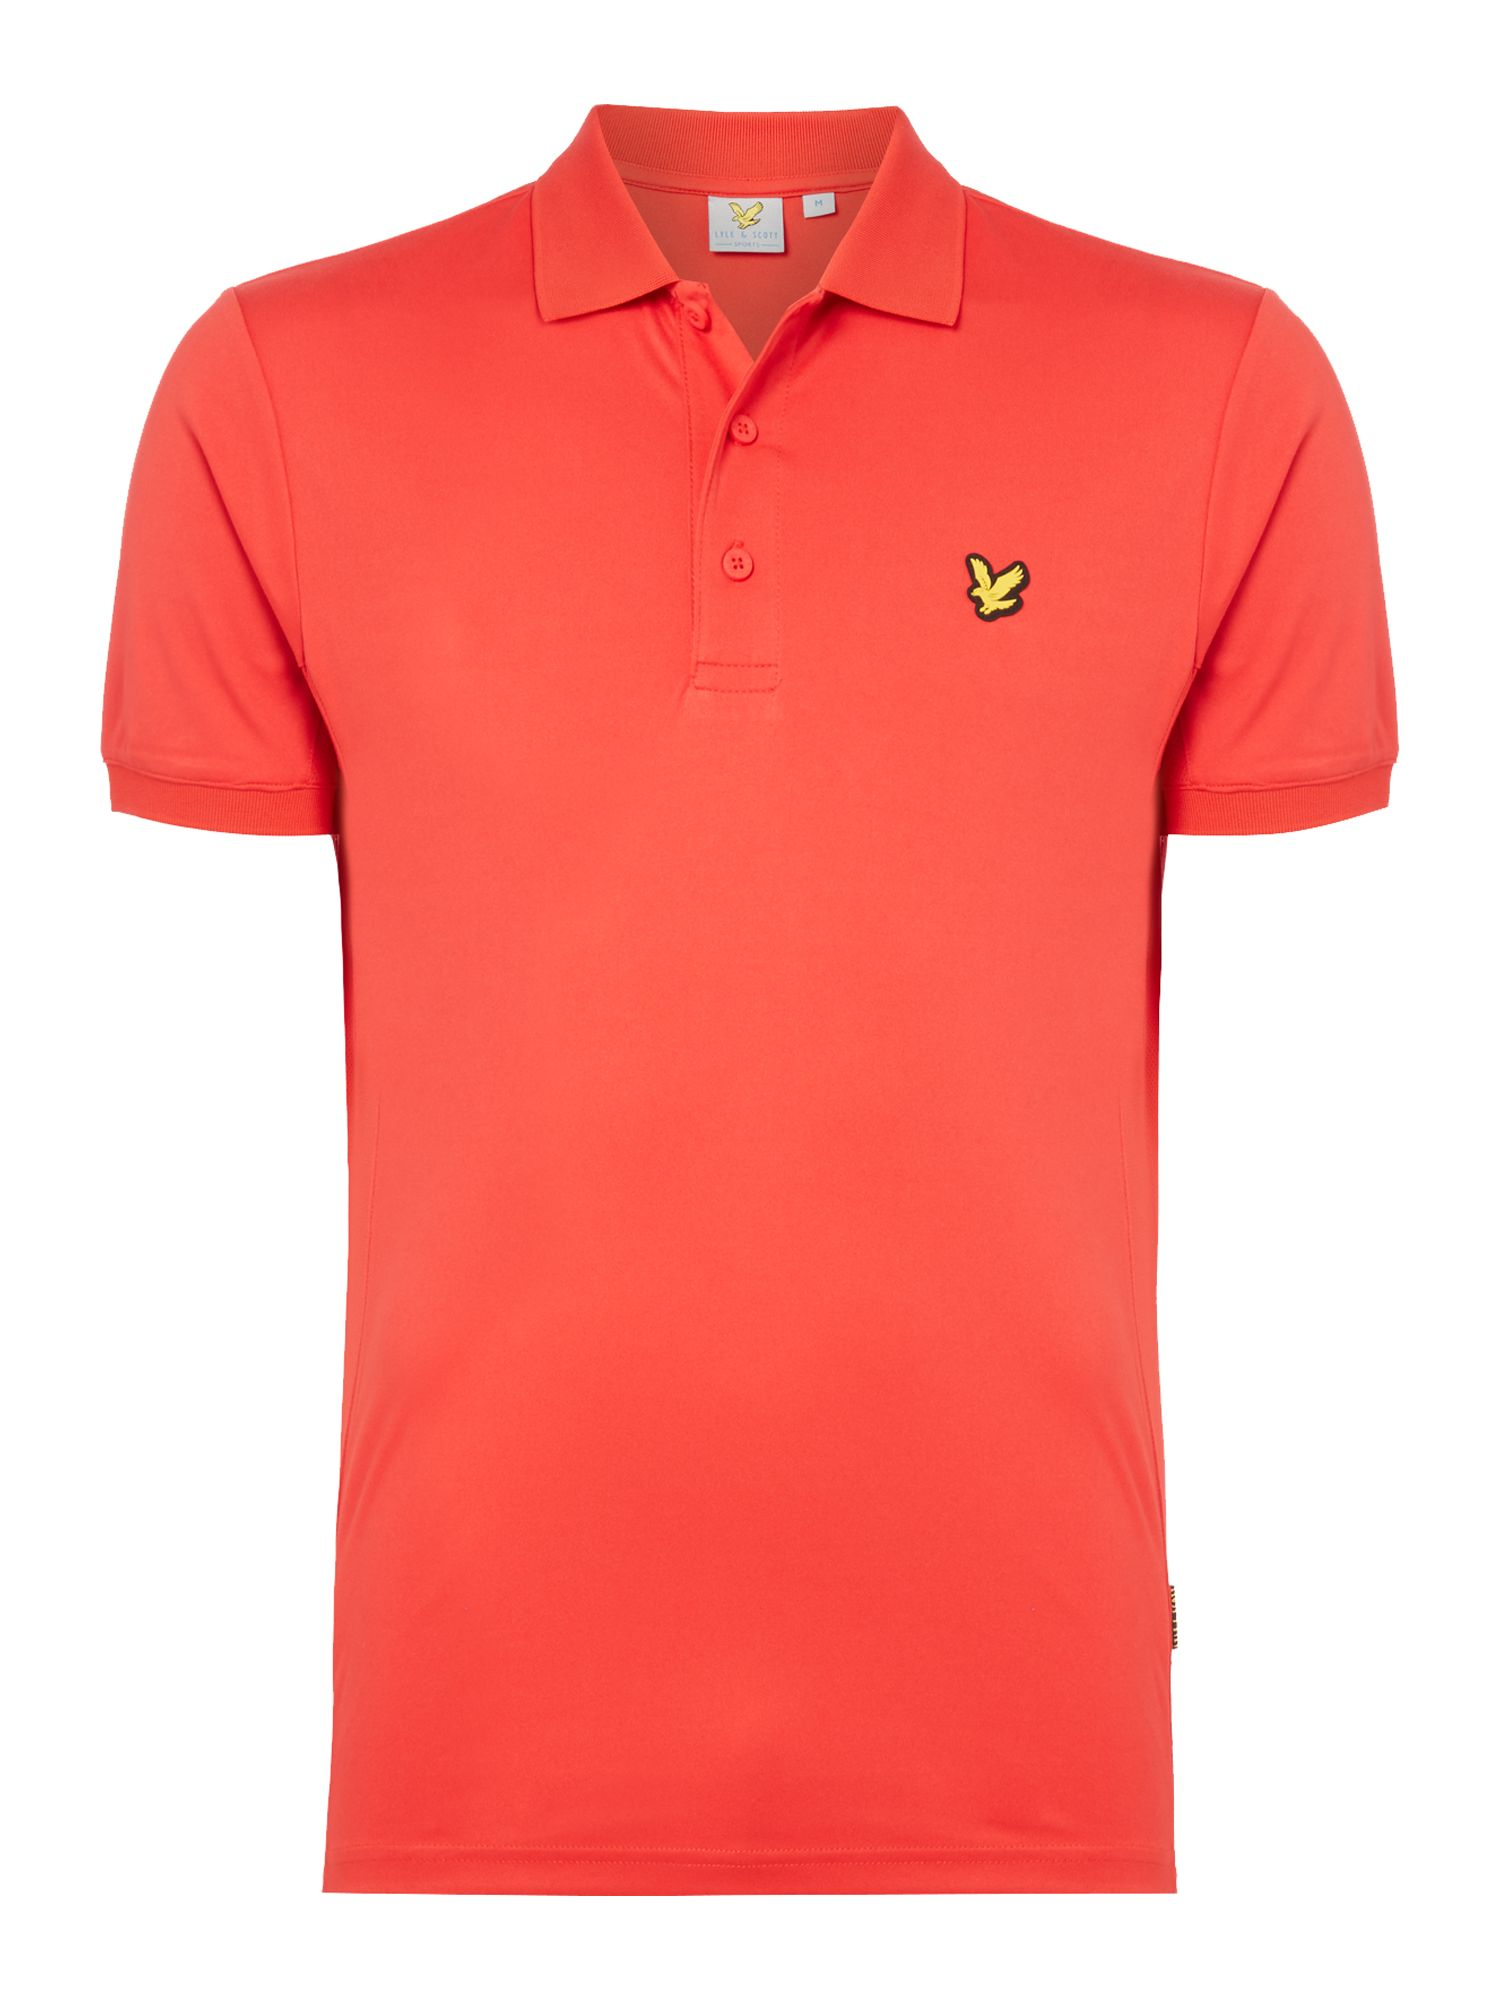 Lyle and Scott Men's Lyle and Scott Sports Pascoe short sleeve 2 tone polo, Red